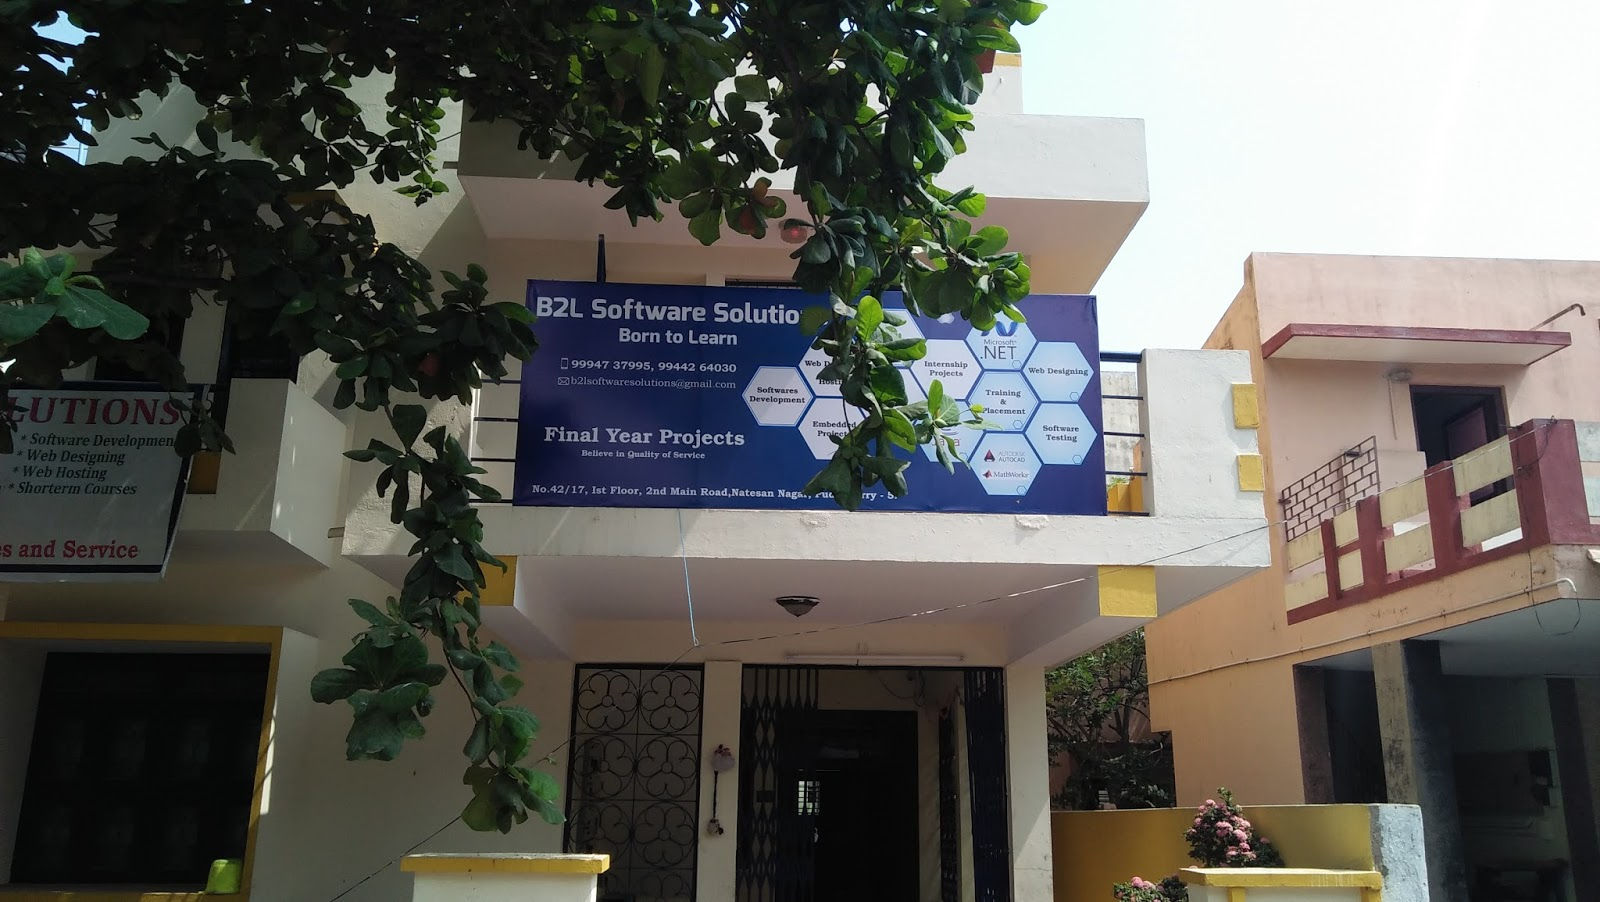 B2l Solutions B2l Software Solutions In Pondicherry Best Software Development Company In Pondicherry